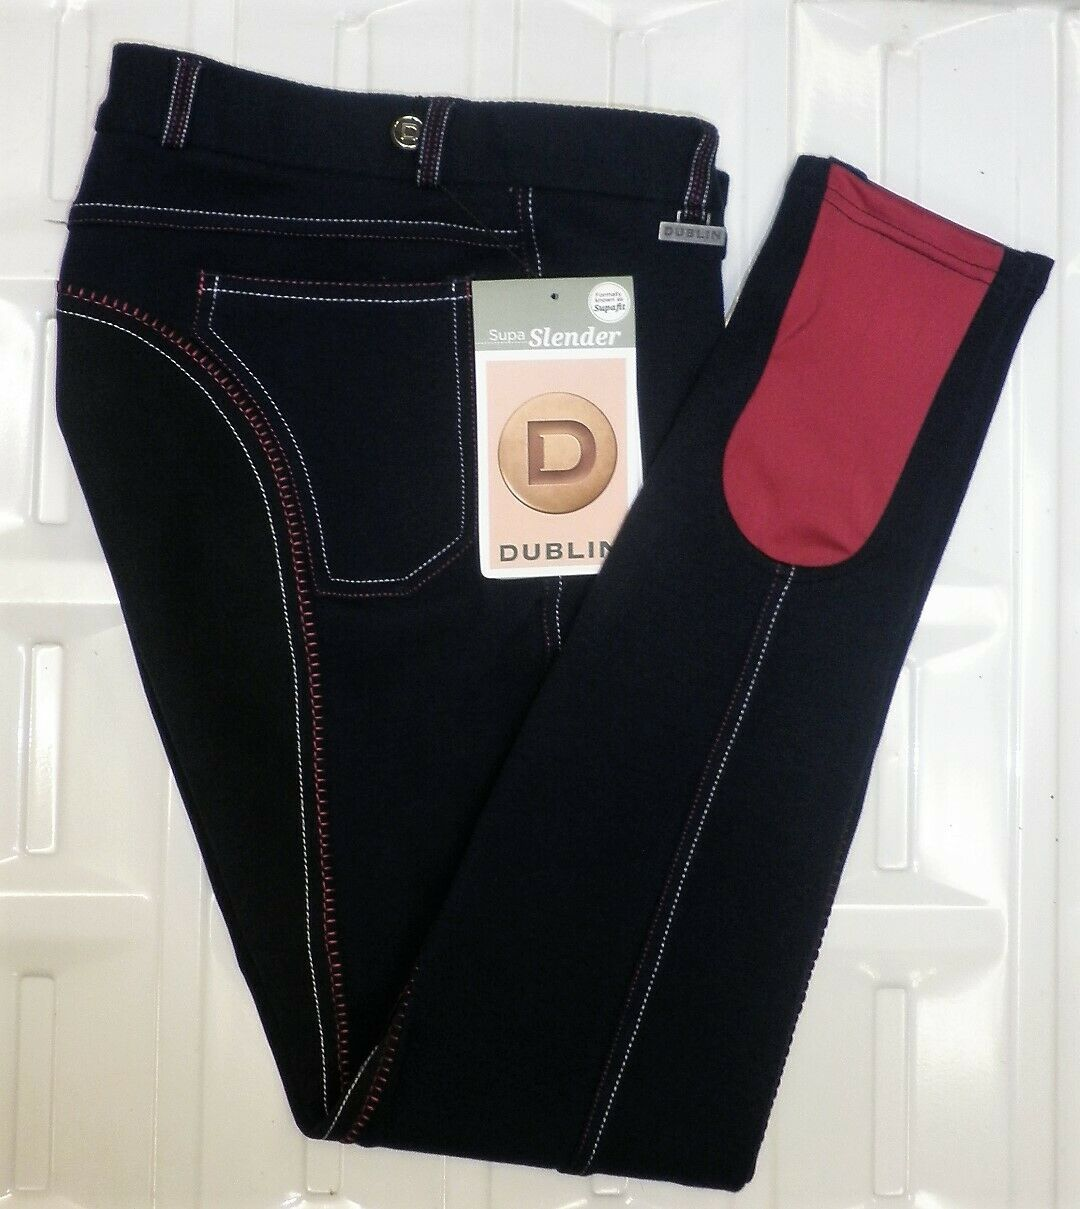 Dublin Supa Slender Full  Seat Fashion Breeches Navy With Pink & White Stitch 26   great selection & quick delivery